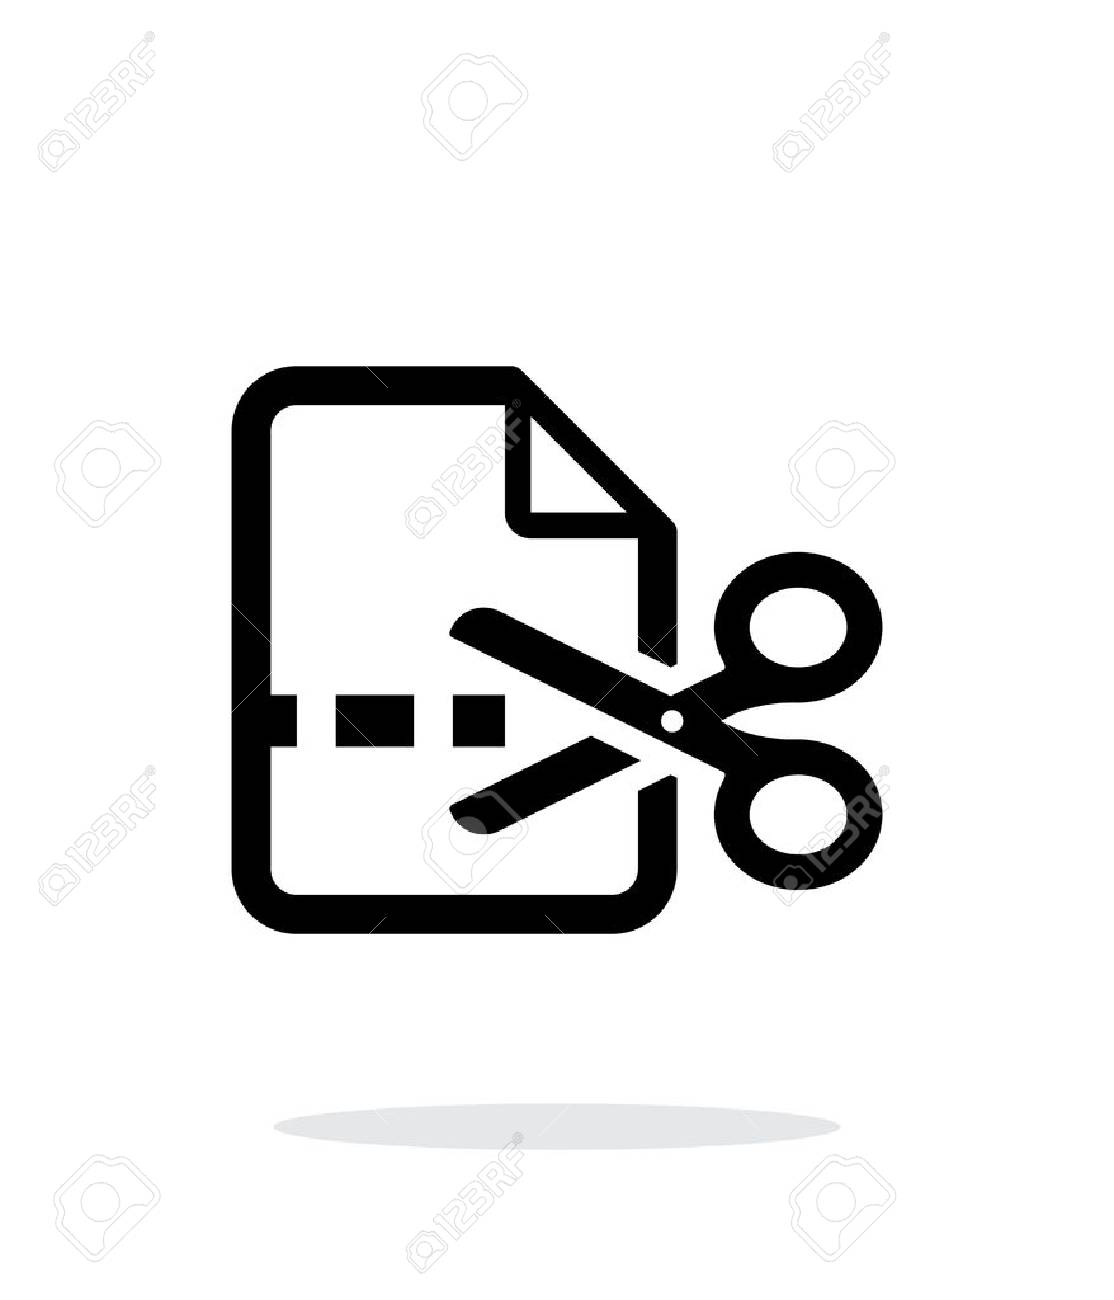 Cut file icon on white background